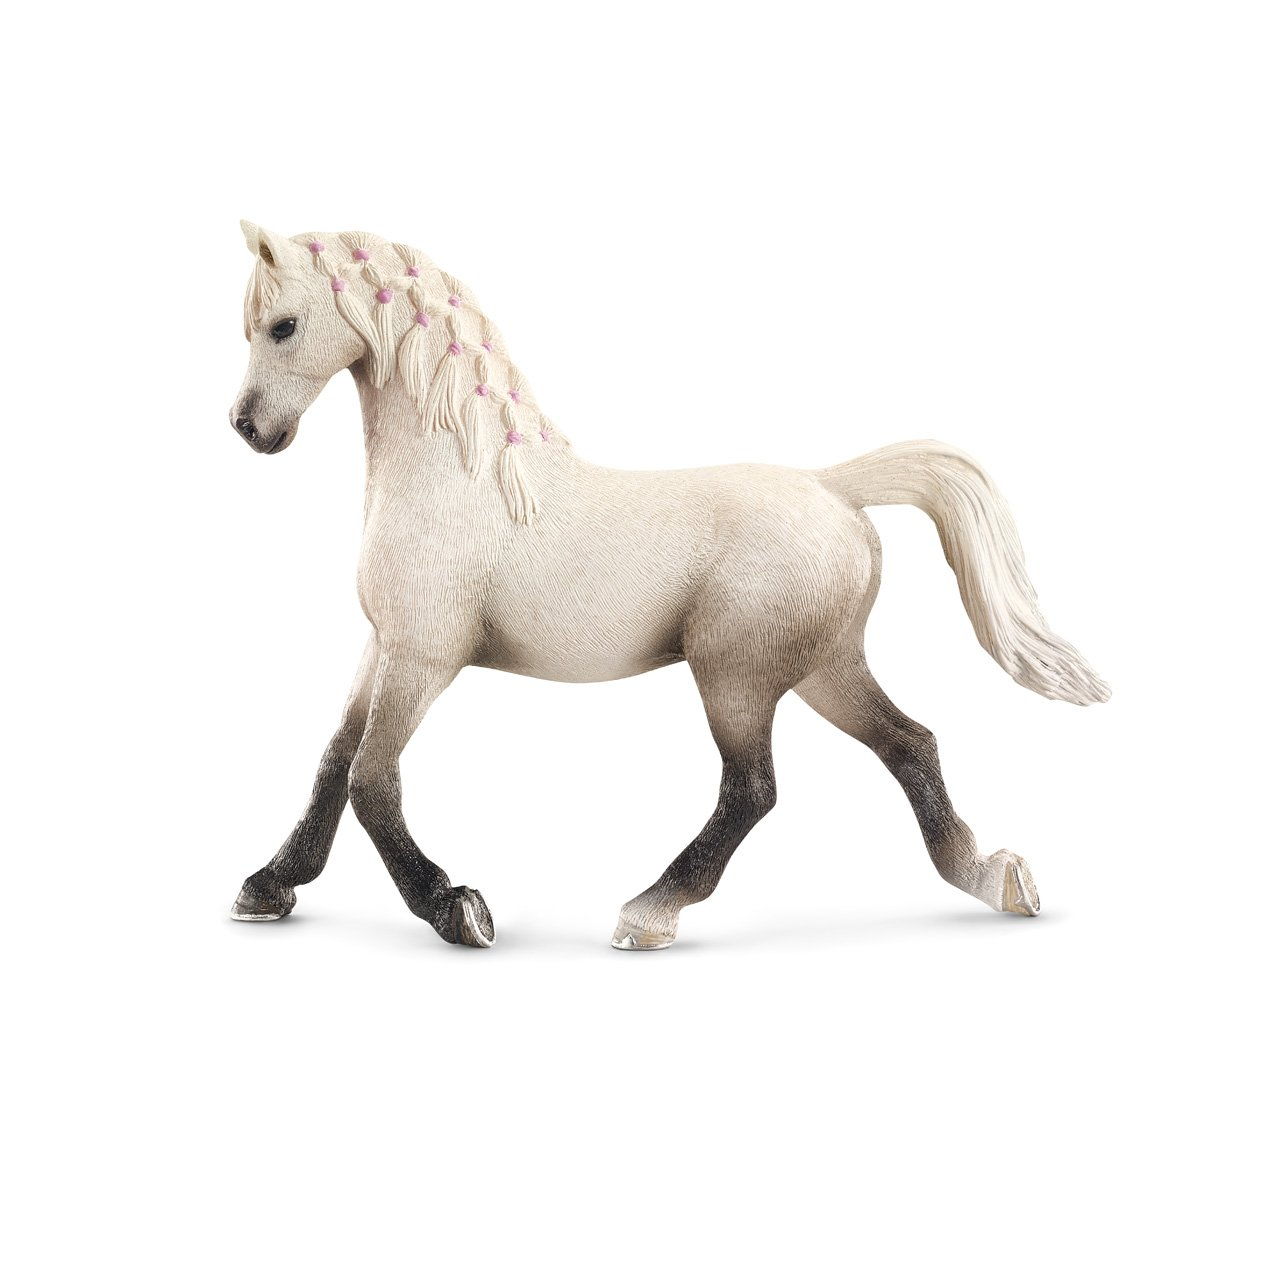 Schleich 13761 Arabian Mare Toy Figure Schleich North America